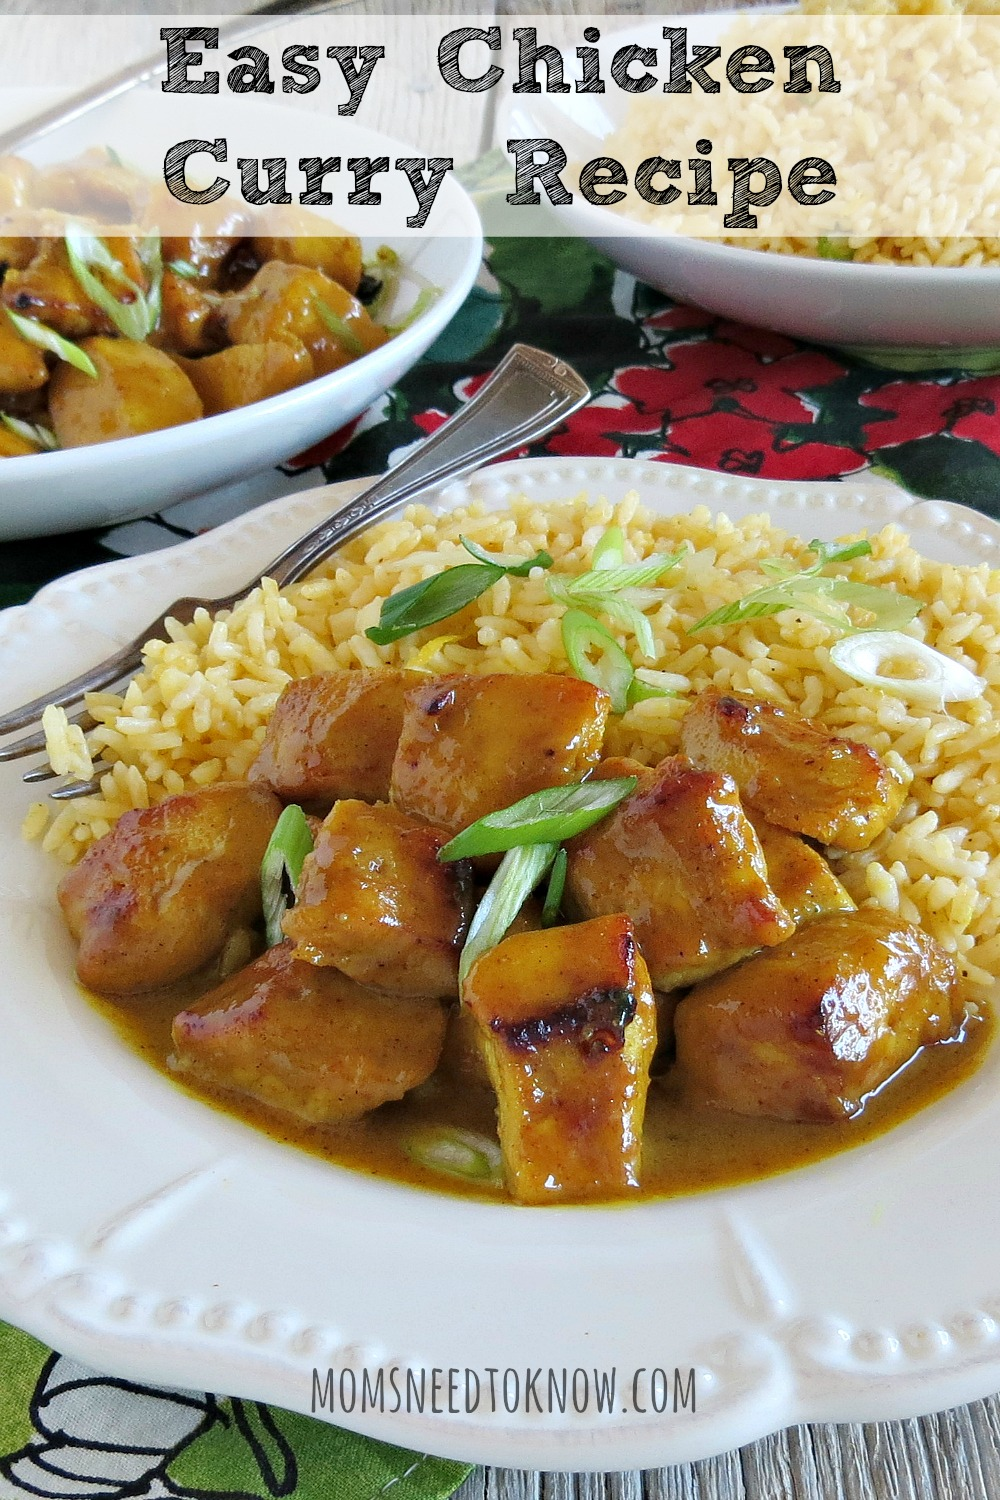 This chicken curry recipe does double-duty as a main meal (served over rice) you can stick some toothpicks in the pieces and serve as hors d'oeuvres!